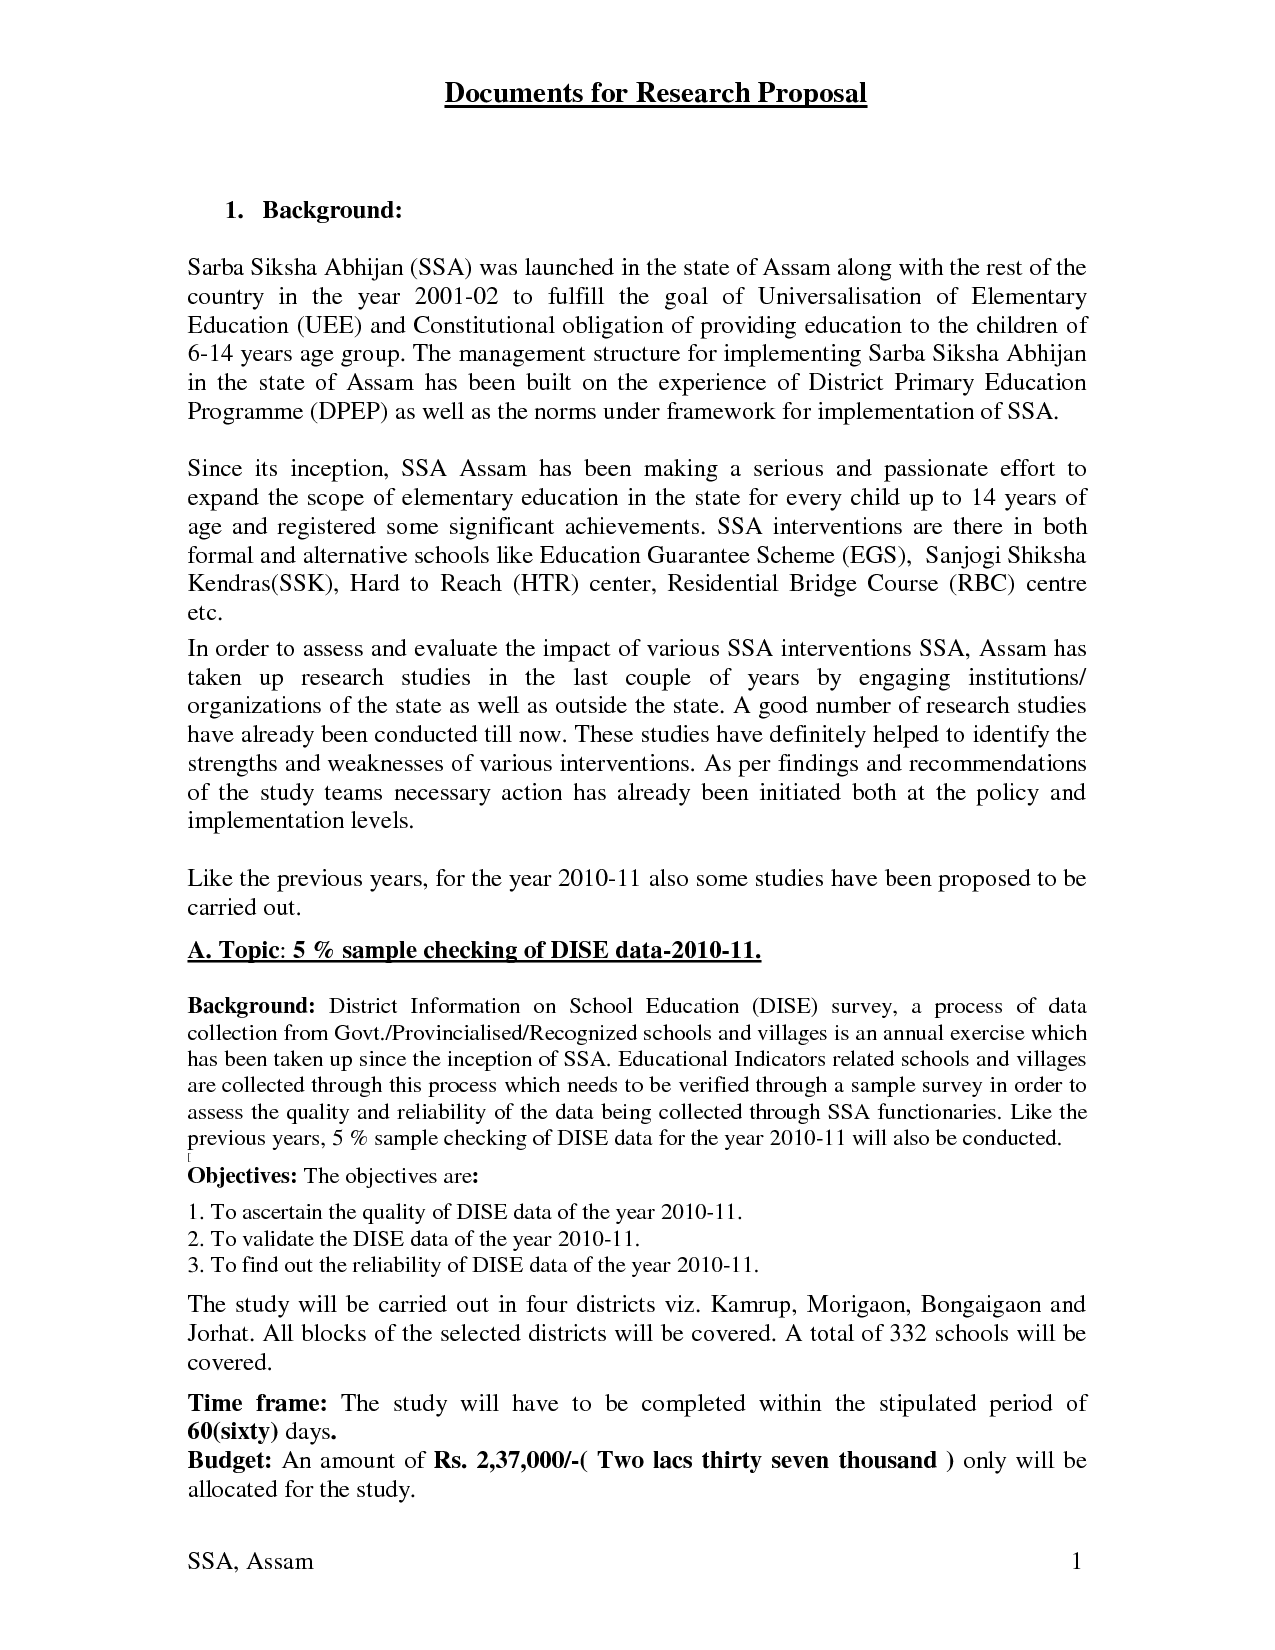 018 Essay Example What Is Proposal Top A Argument The Purpose Of Full